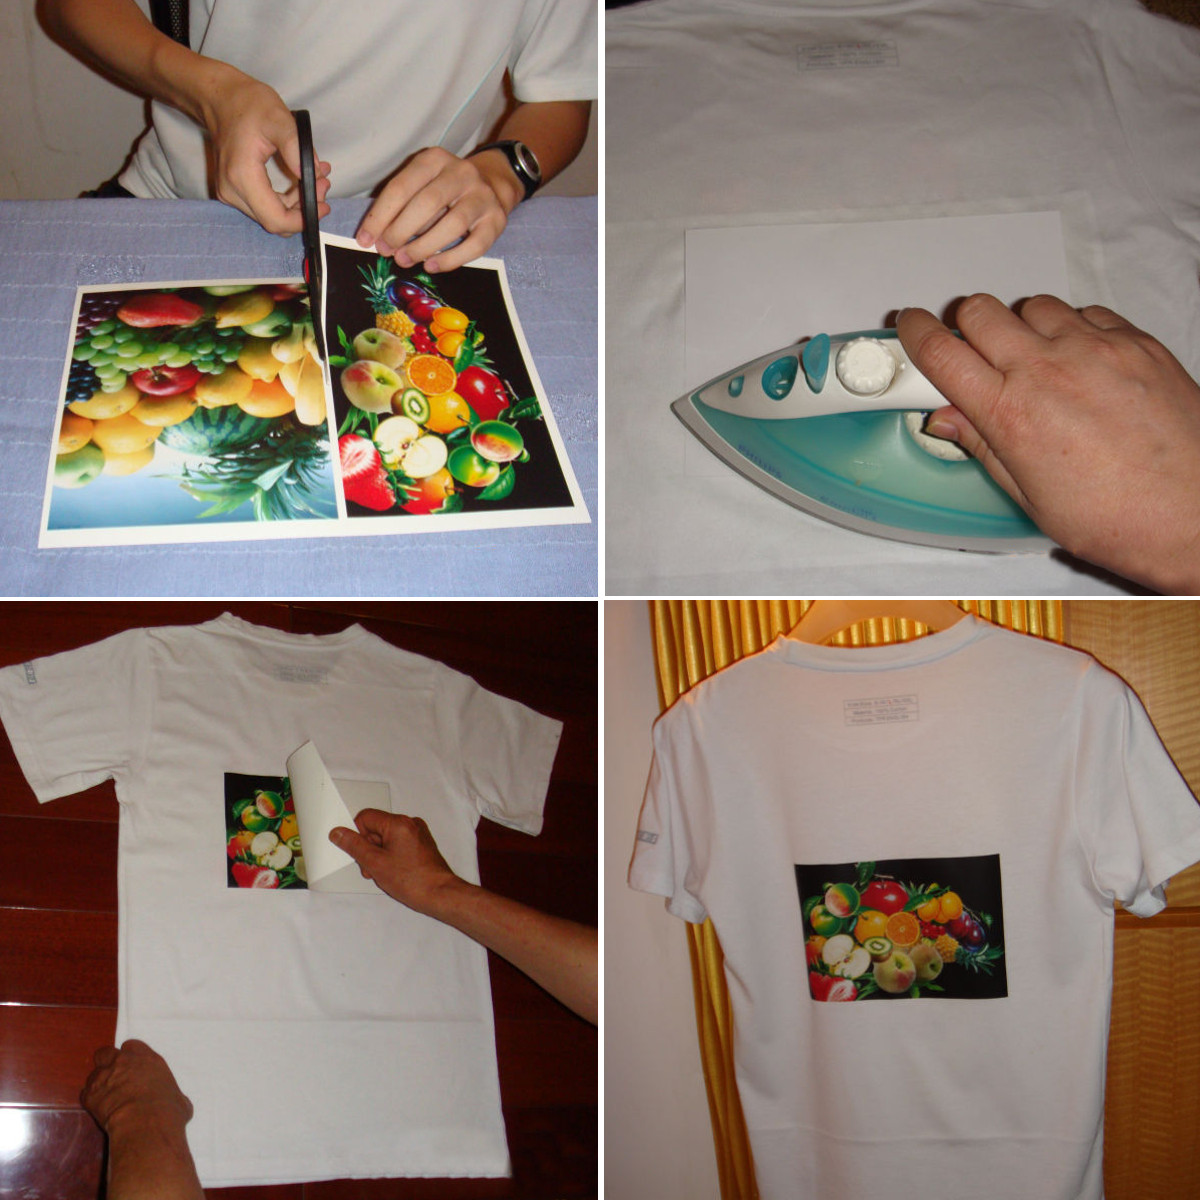 photo about Printable Iron on Transfer Paper titled T-Blouse Inkjet Iron-Upon Warm Shift Paper For Material Material, A3 16.5\